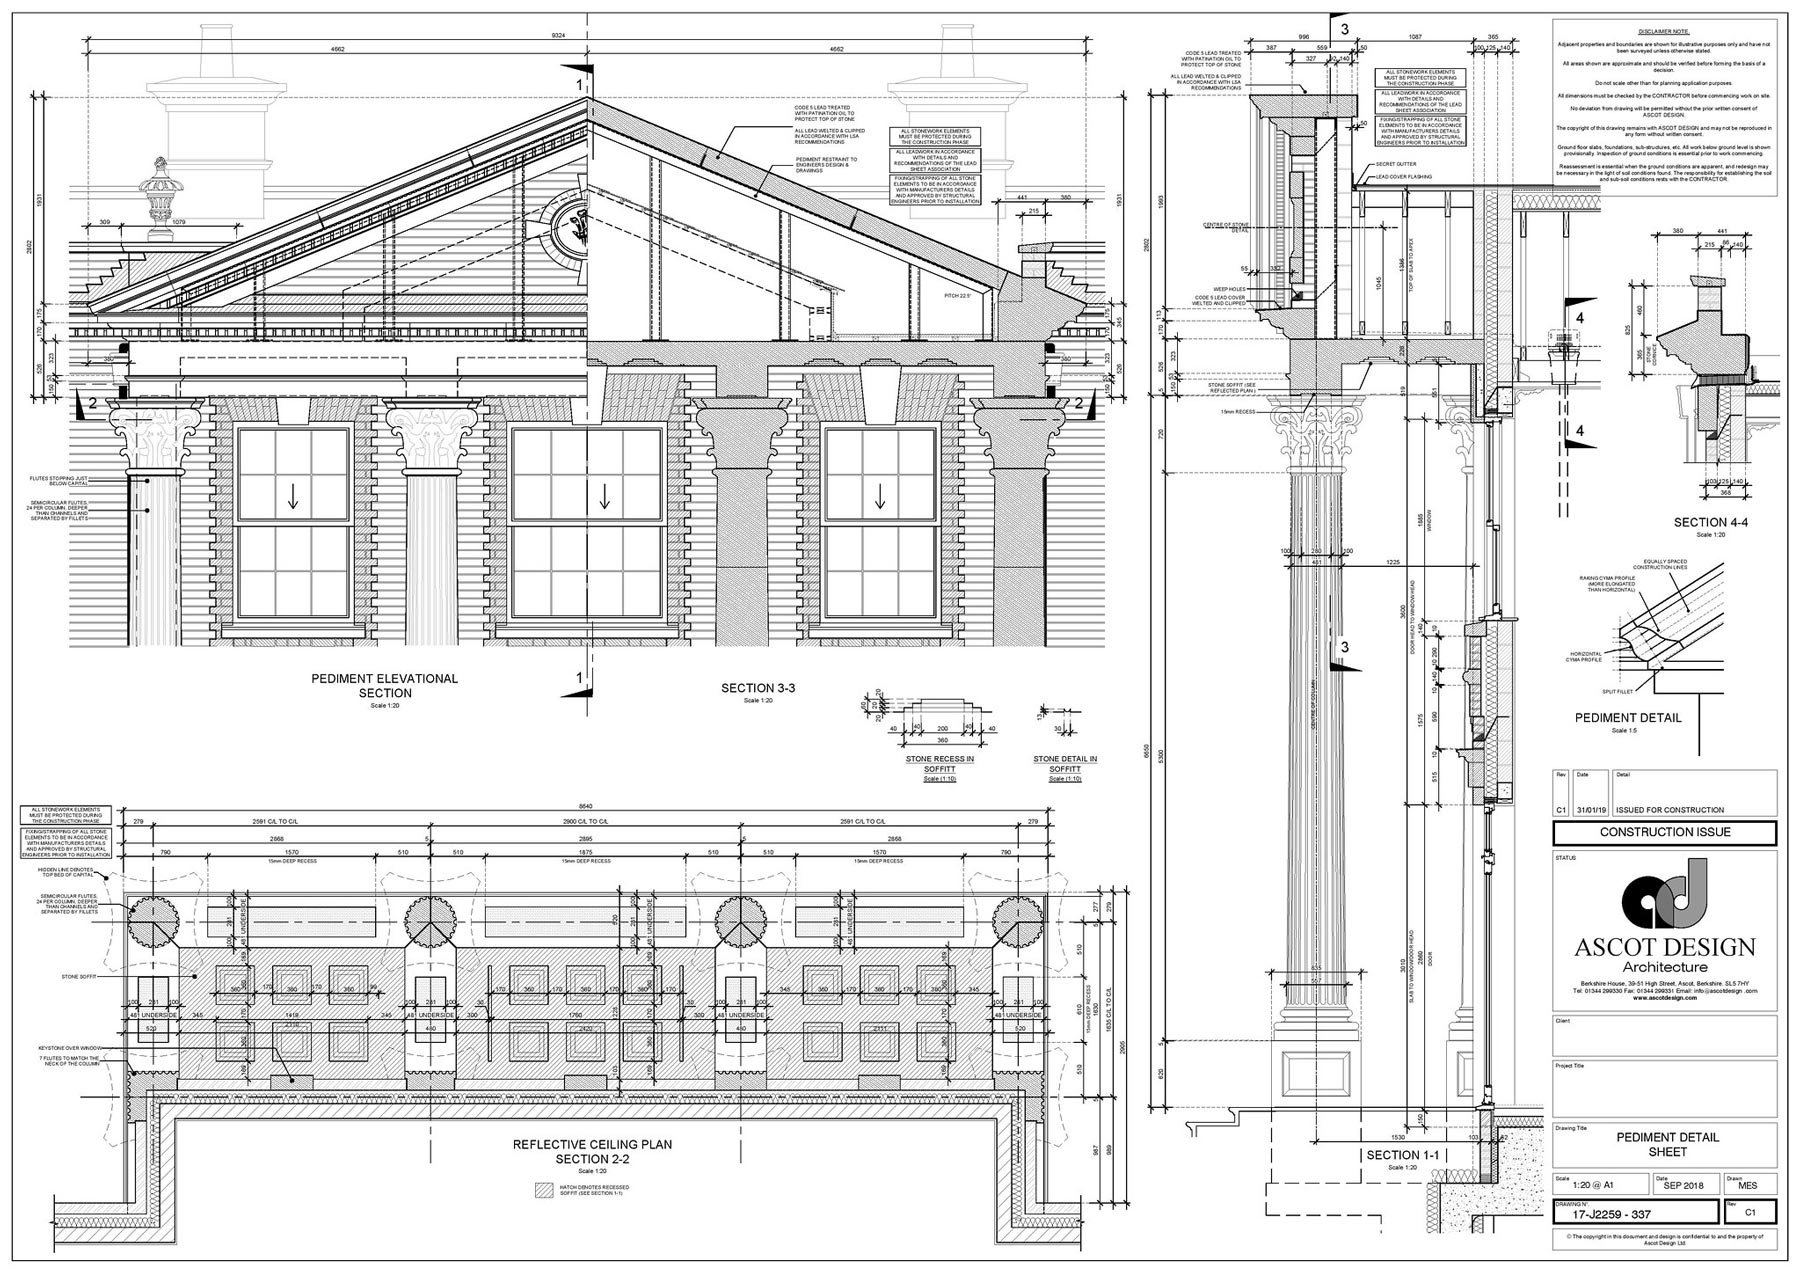 services-detailed-technical-drawings-ascot-design.jpg